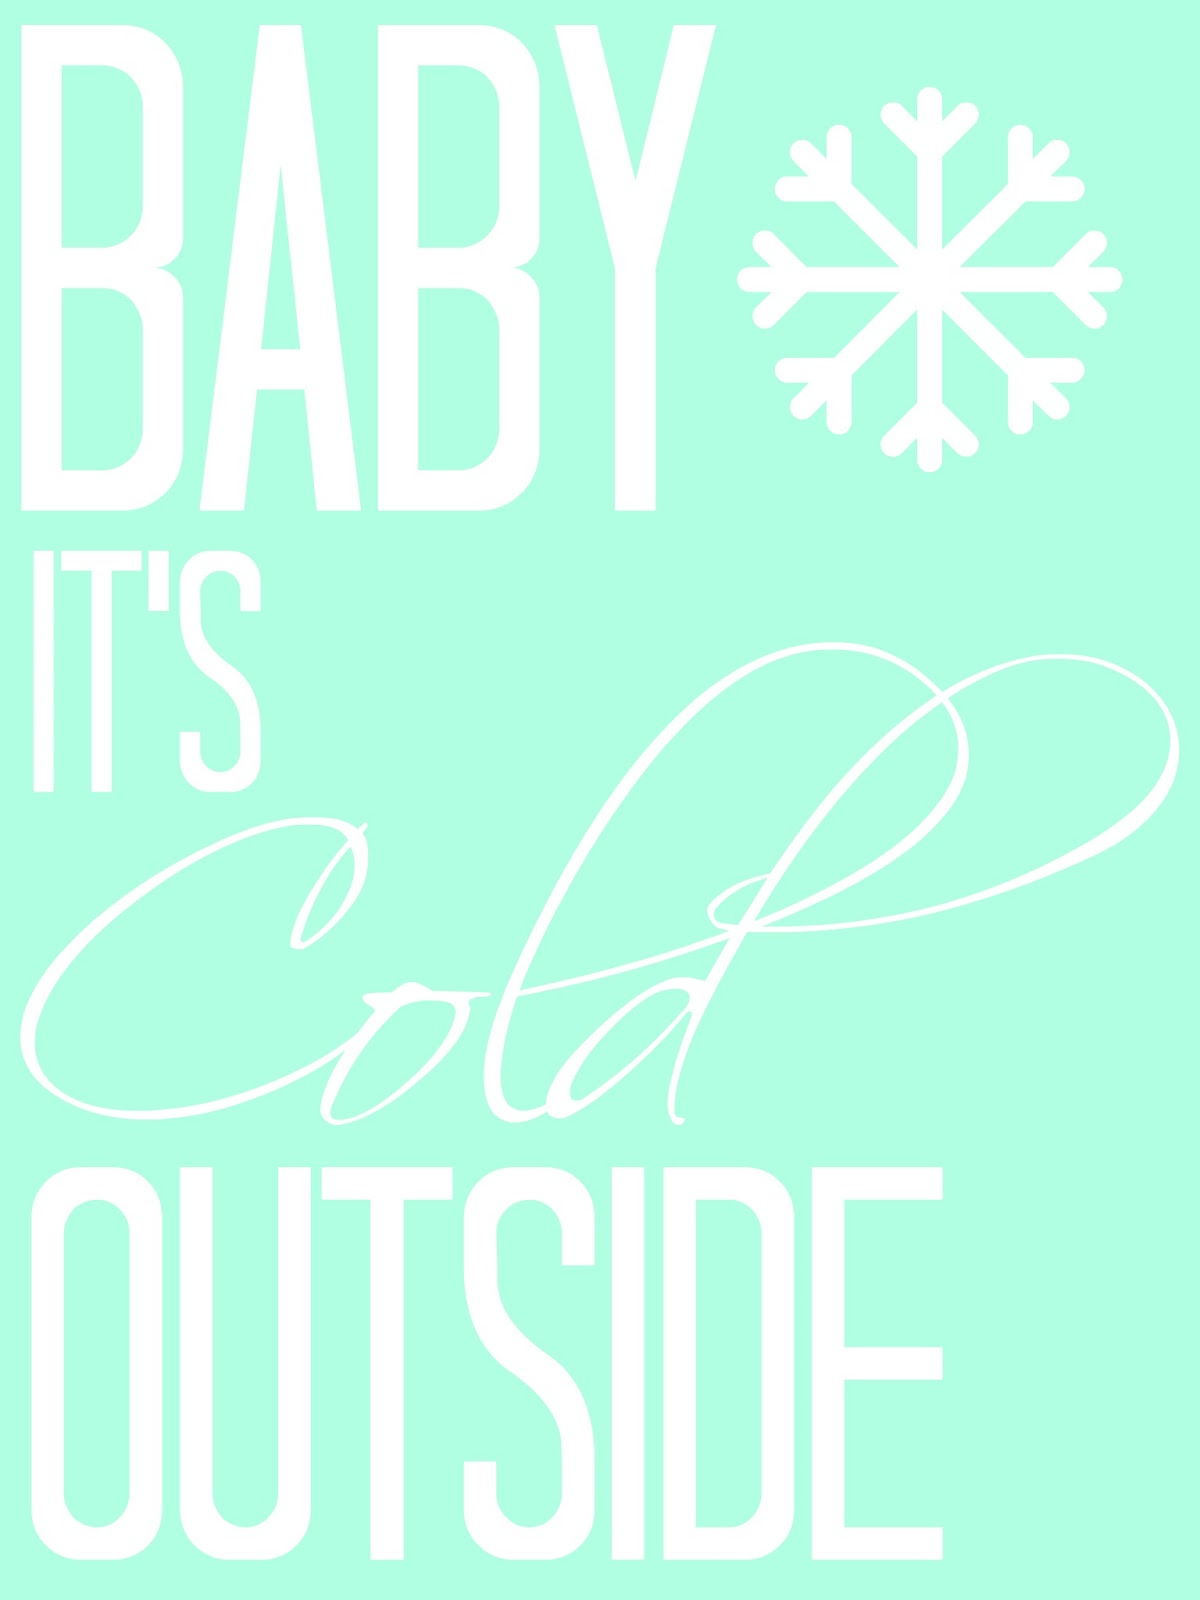 Baby It's Cold Outside Printable - The Girl Creative